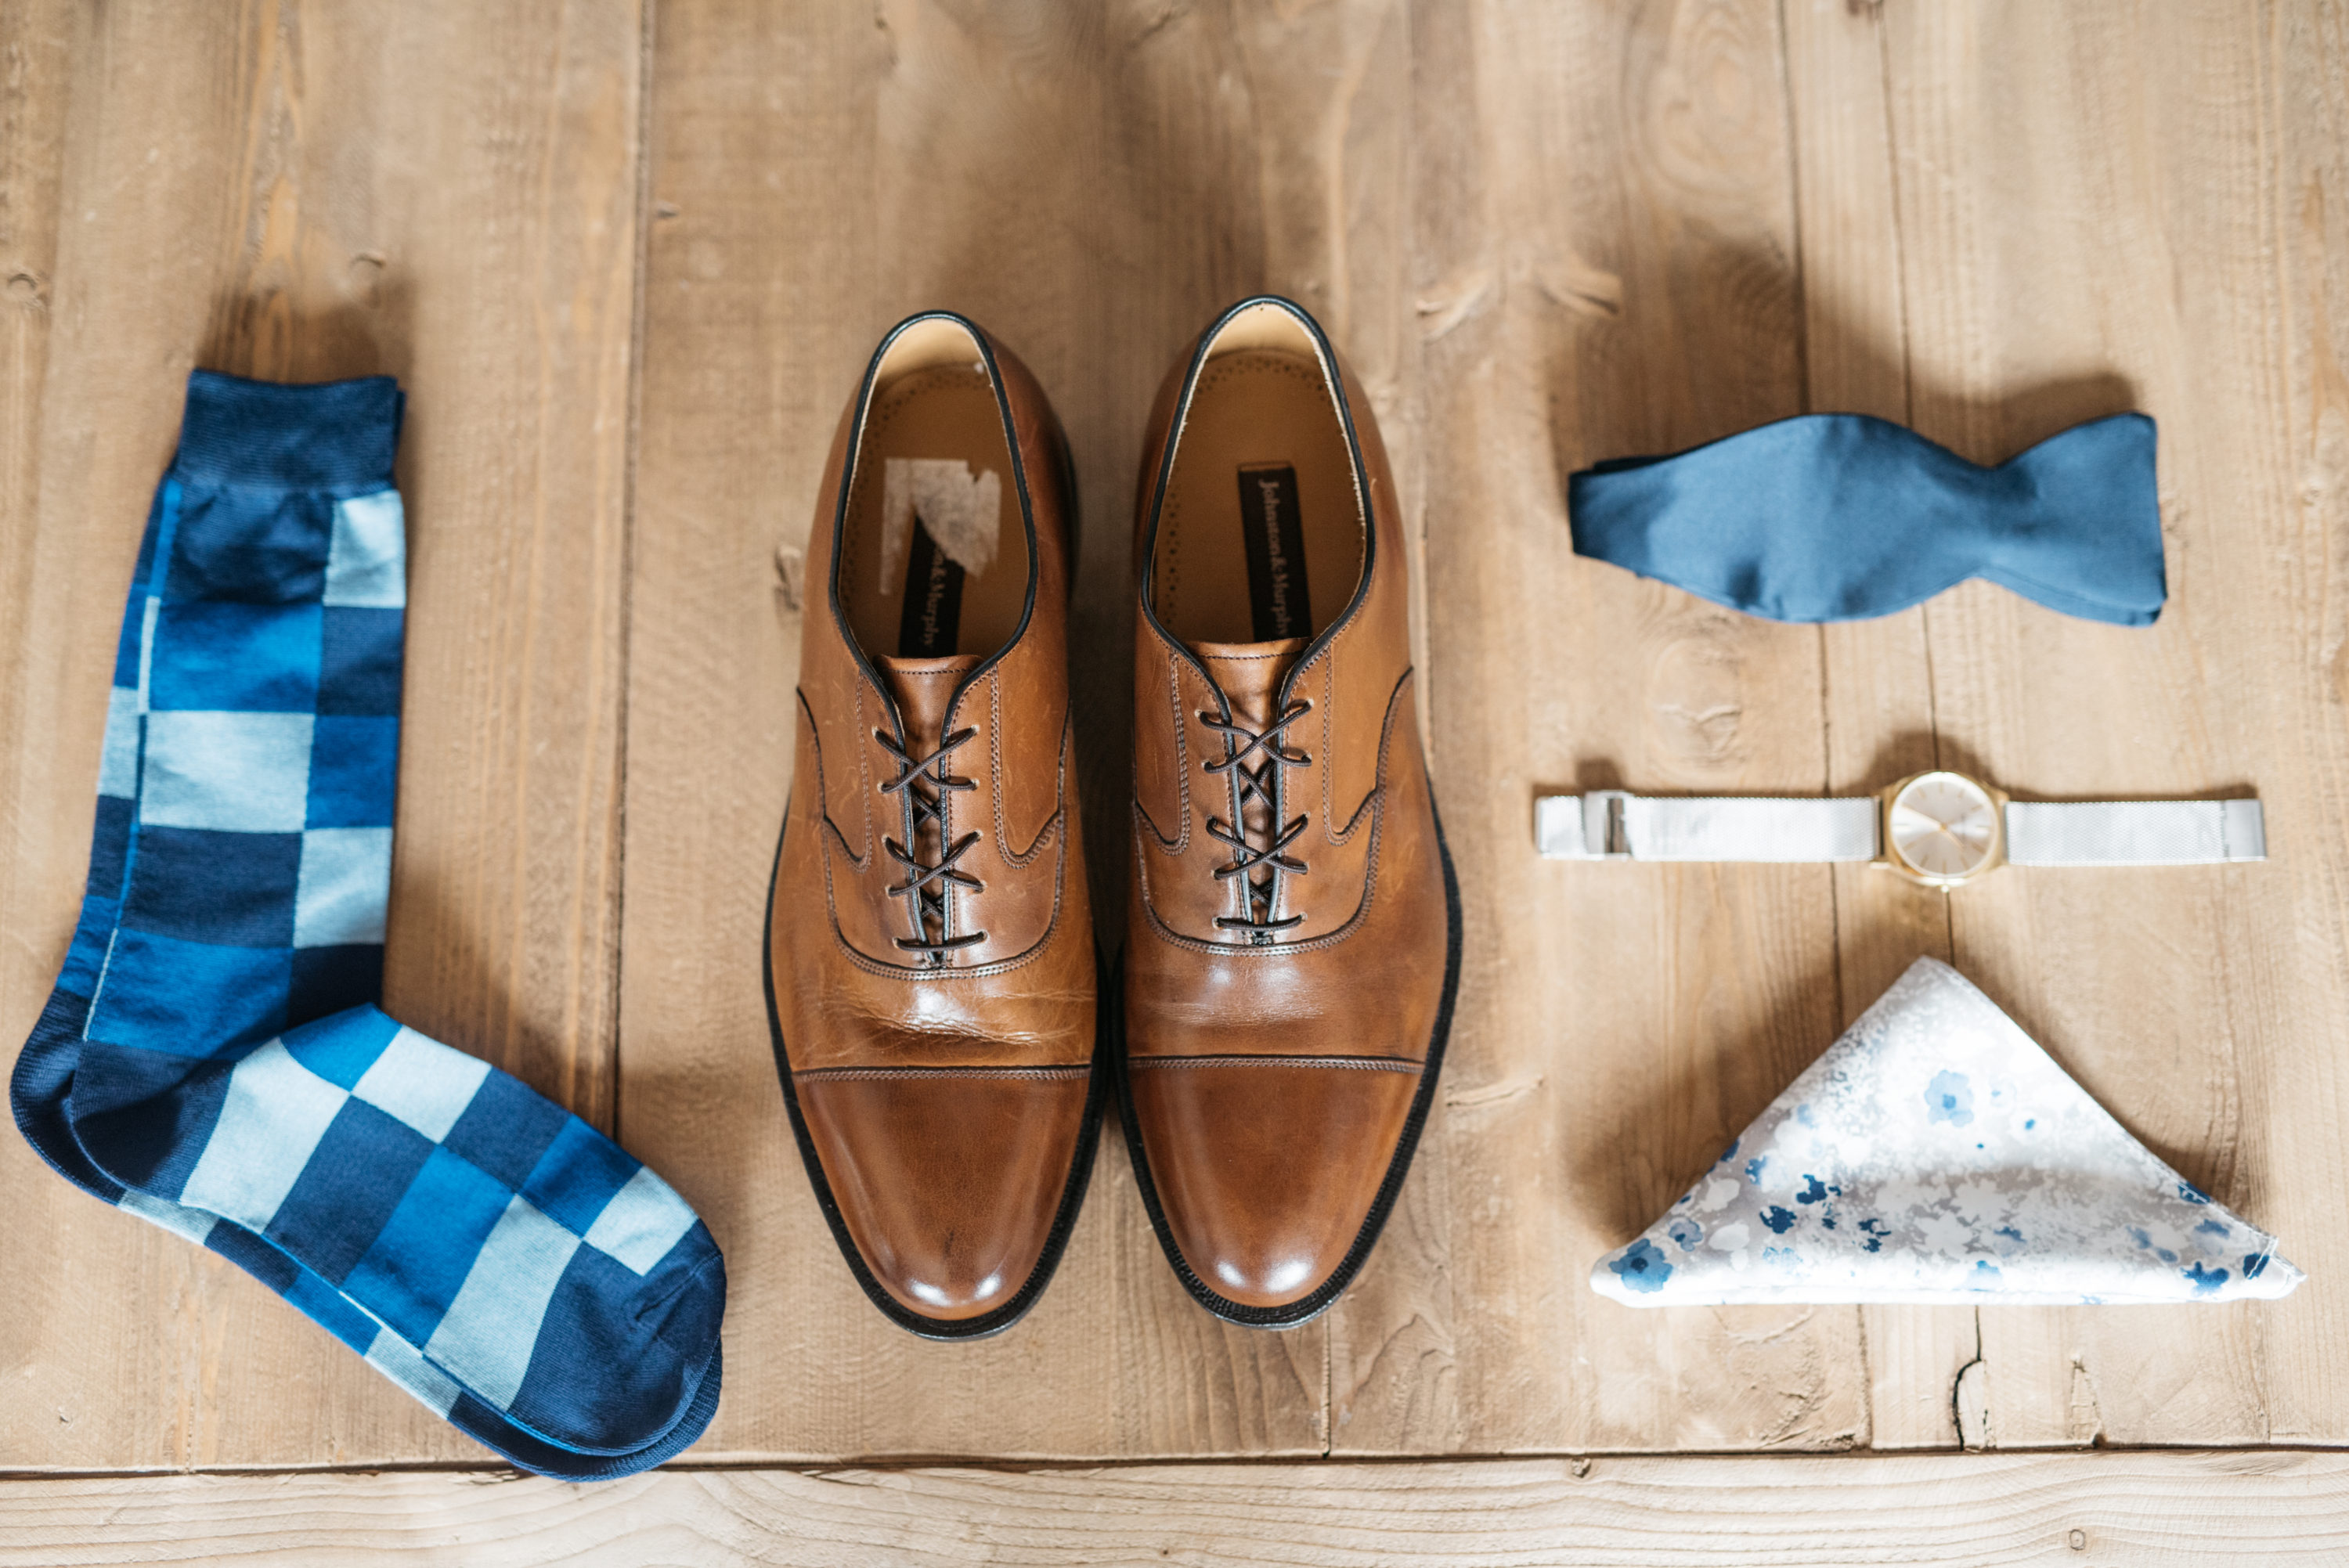 Groom details of his shoes, socks, watch, and bow tie